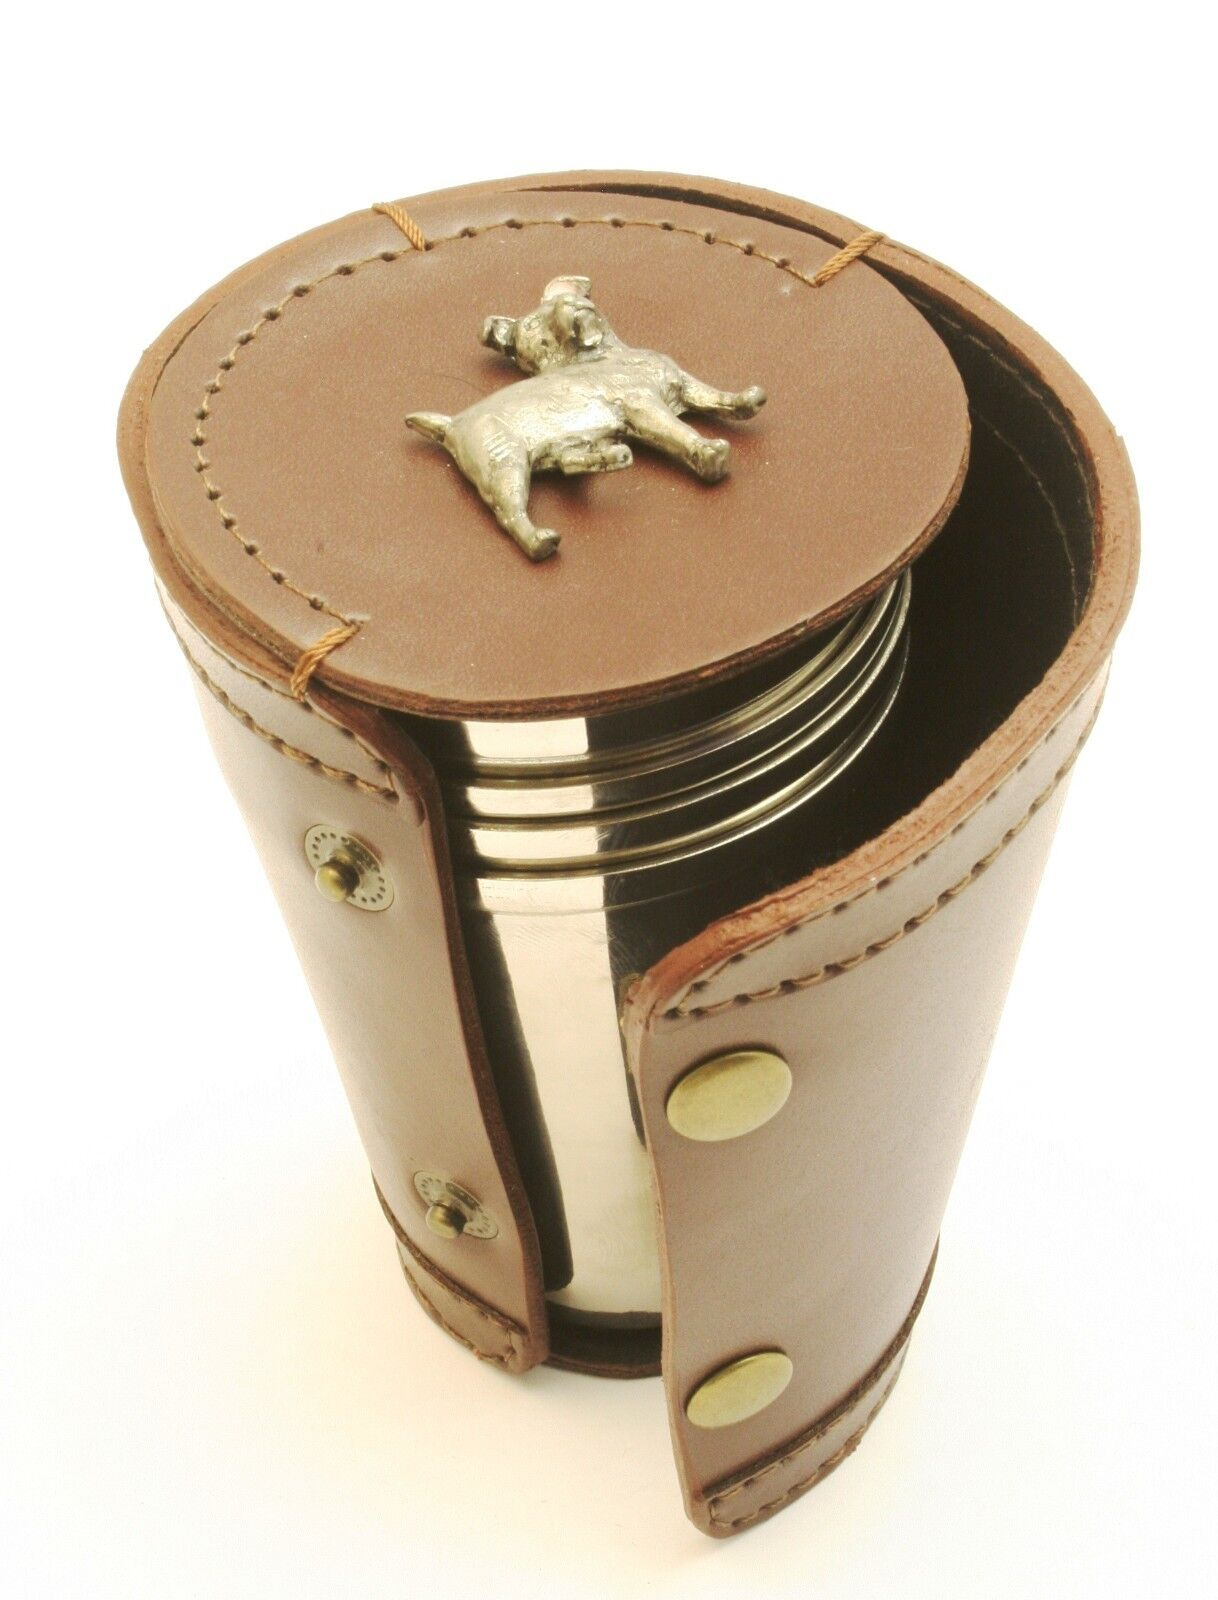 Jack Russel Dog Lovers 4 Stacking Stirrup Shot Cups Cups Cups in Leather Case NEW 4849f2